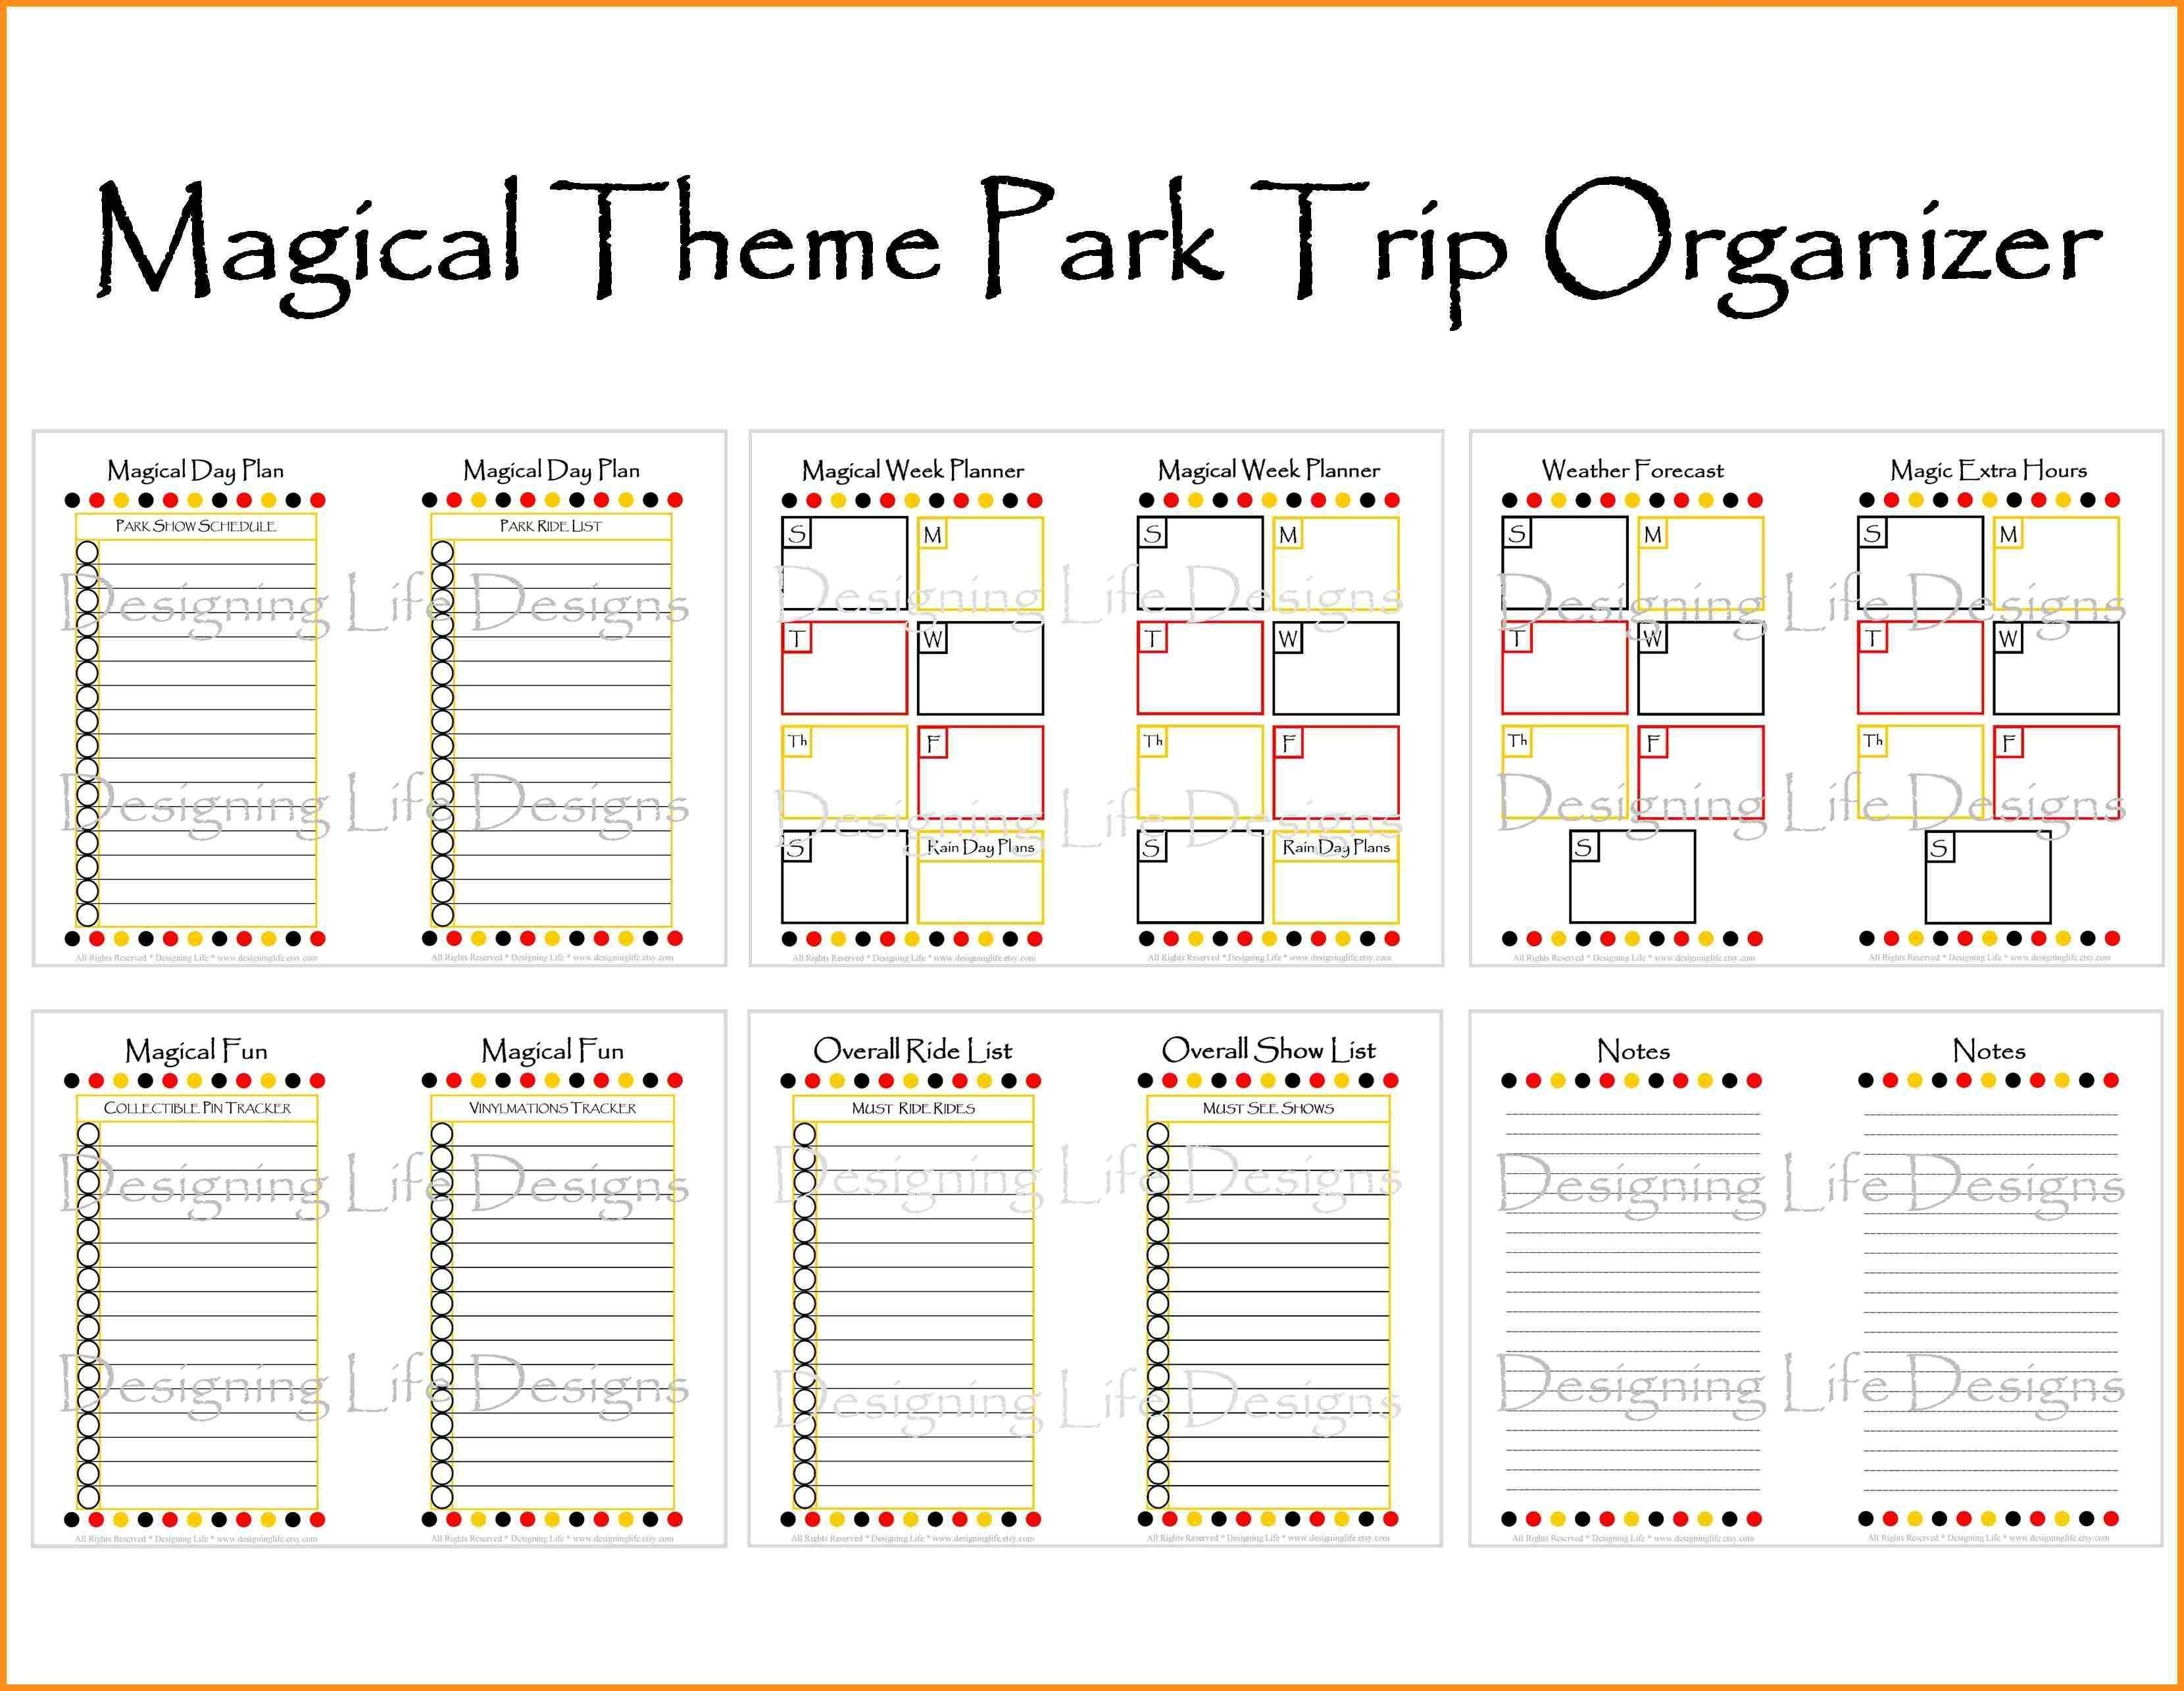 Image Result For Disney World Itinerary Template | Disney-Disney World Itinerary Template